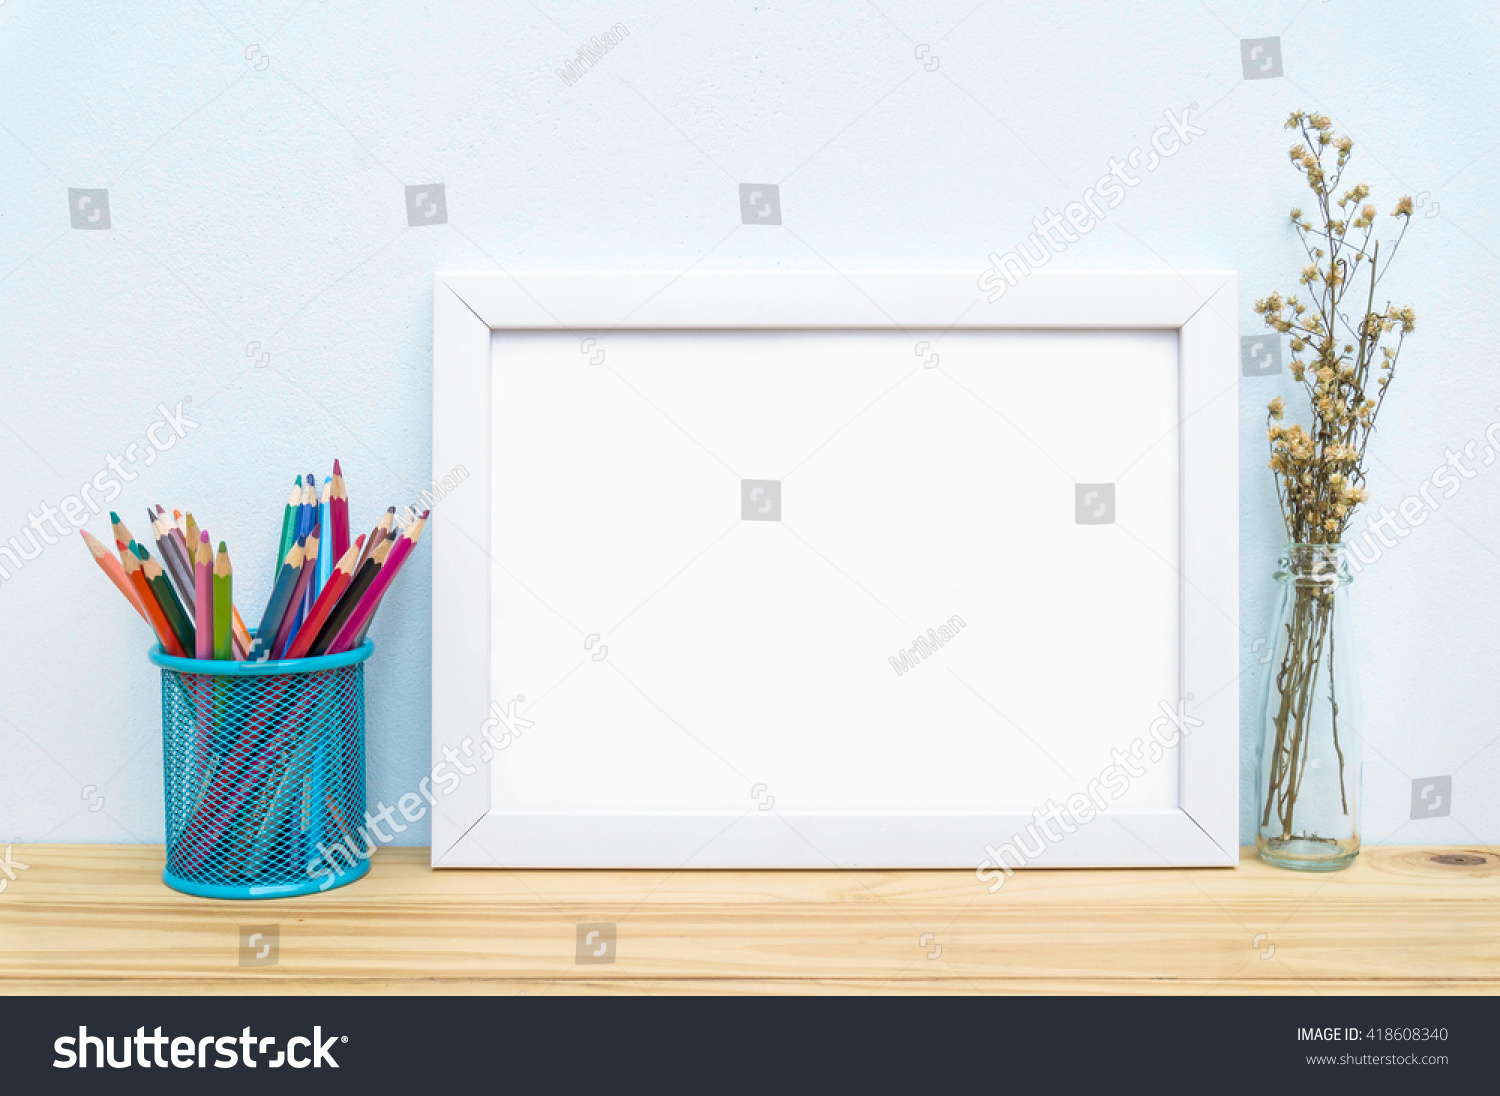 Blank Frame Flower Pencil On Table Stock Photo (Royalty Free ...